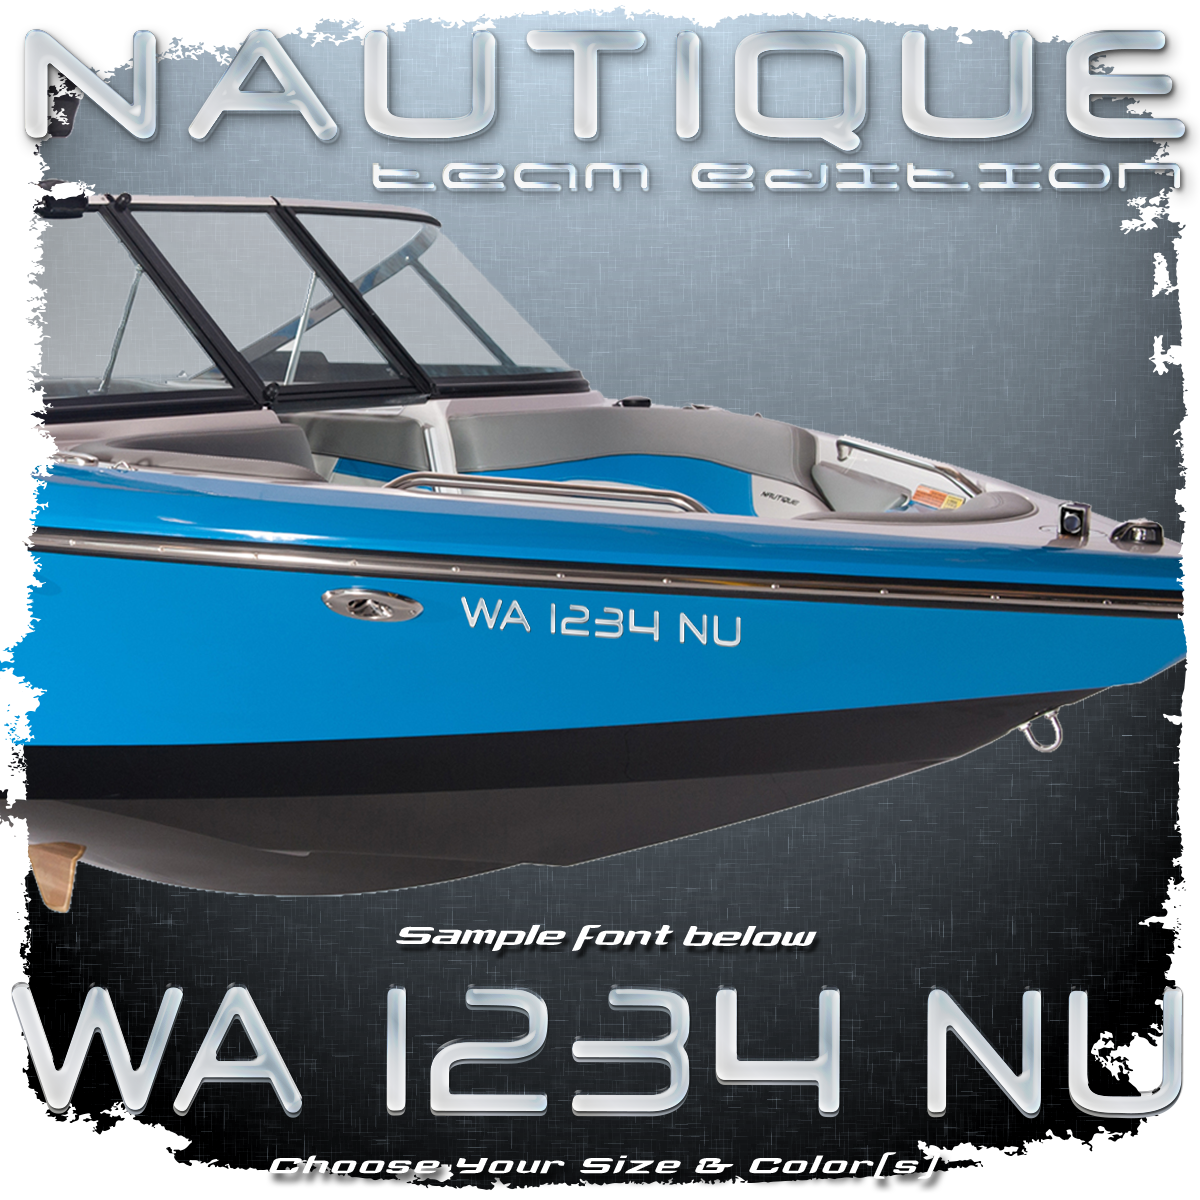 Nautique Team Edition Registration, 2003-05, Choose Your Own Colors (2 included)